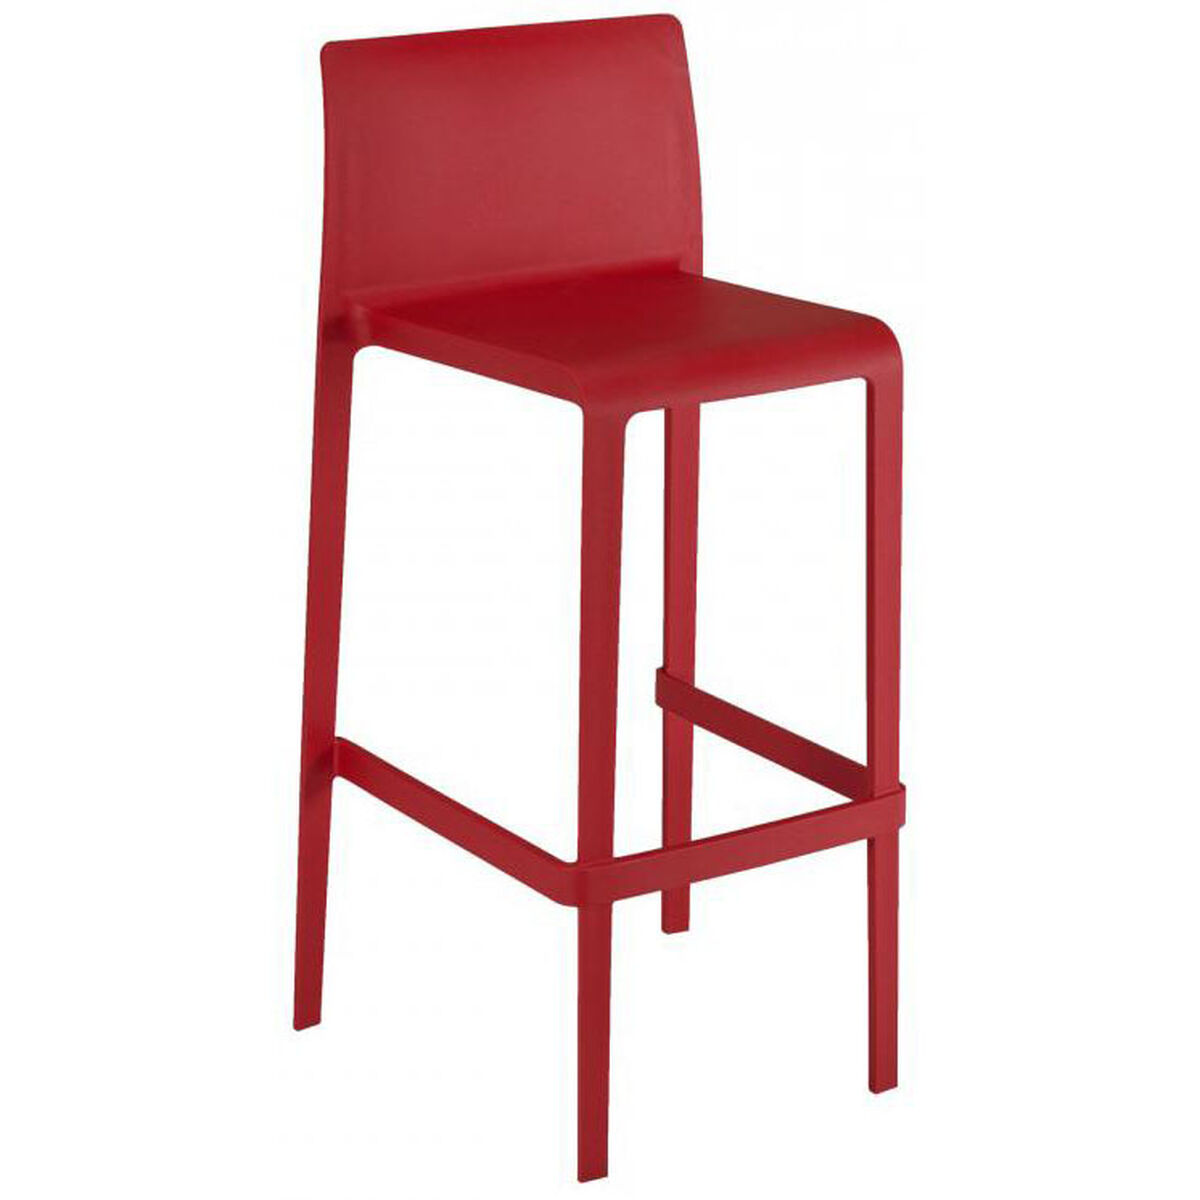 Outdoor Barstool Armless Shell Volt B Red